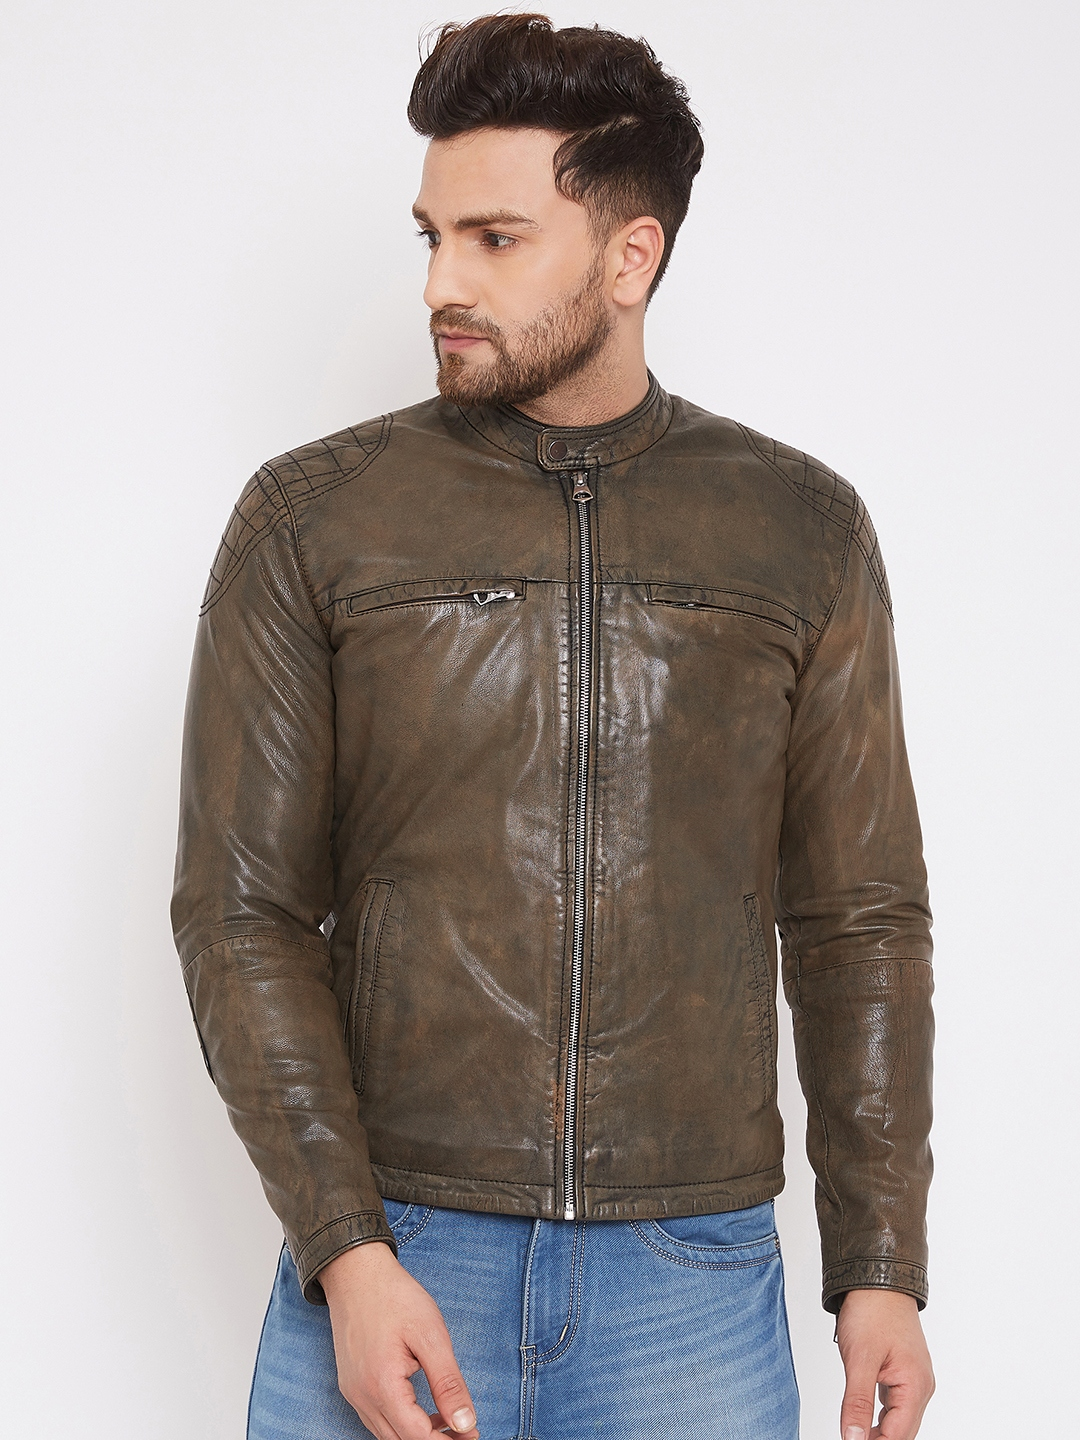 Justanned   JUSTANNED MEN GENUINE REAL LEATHER STONE WASH  JACKET